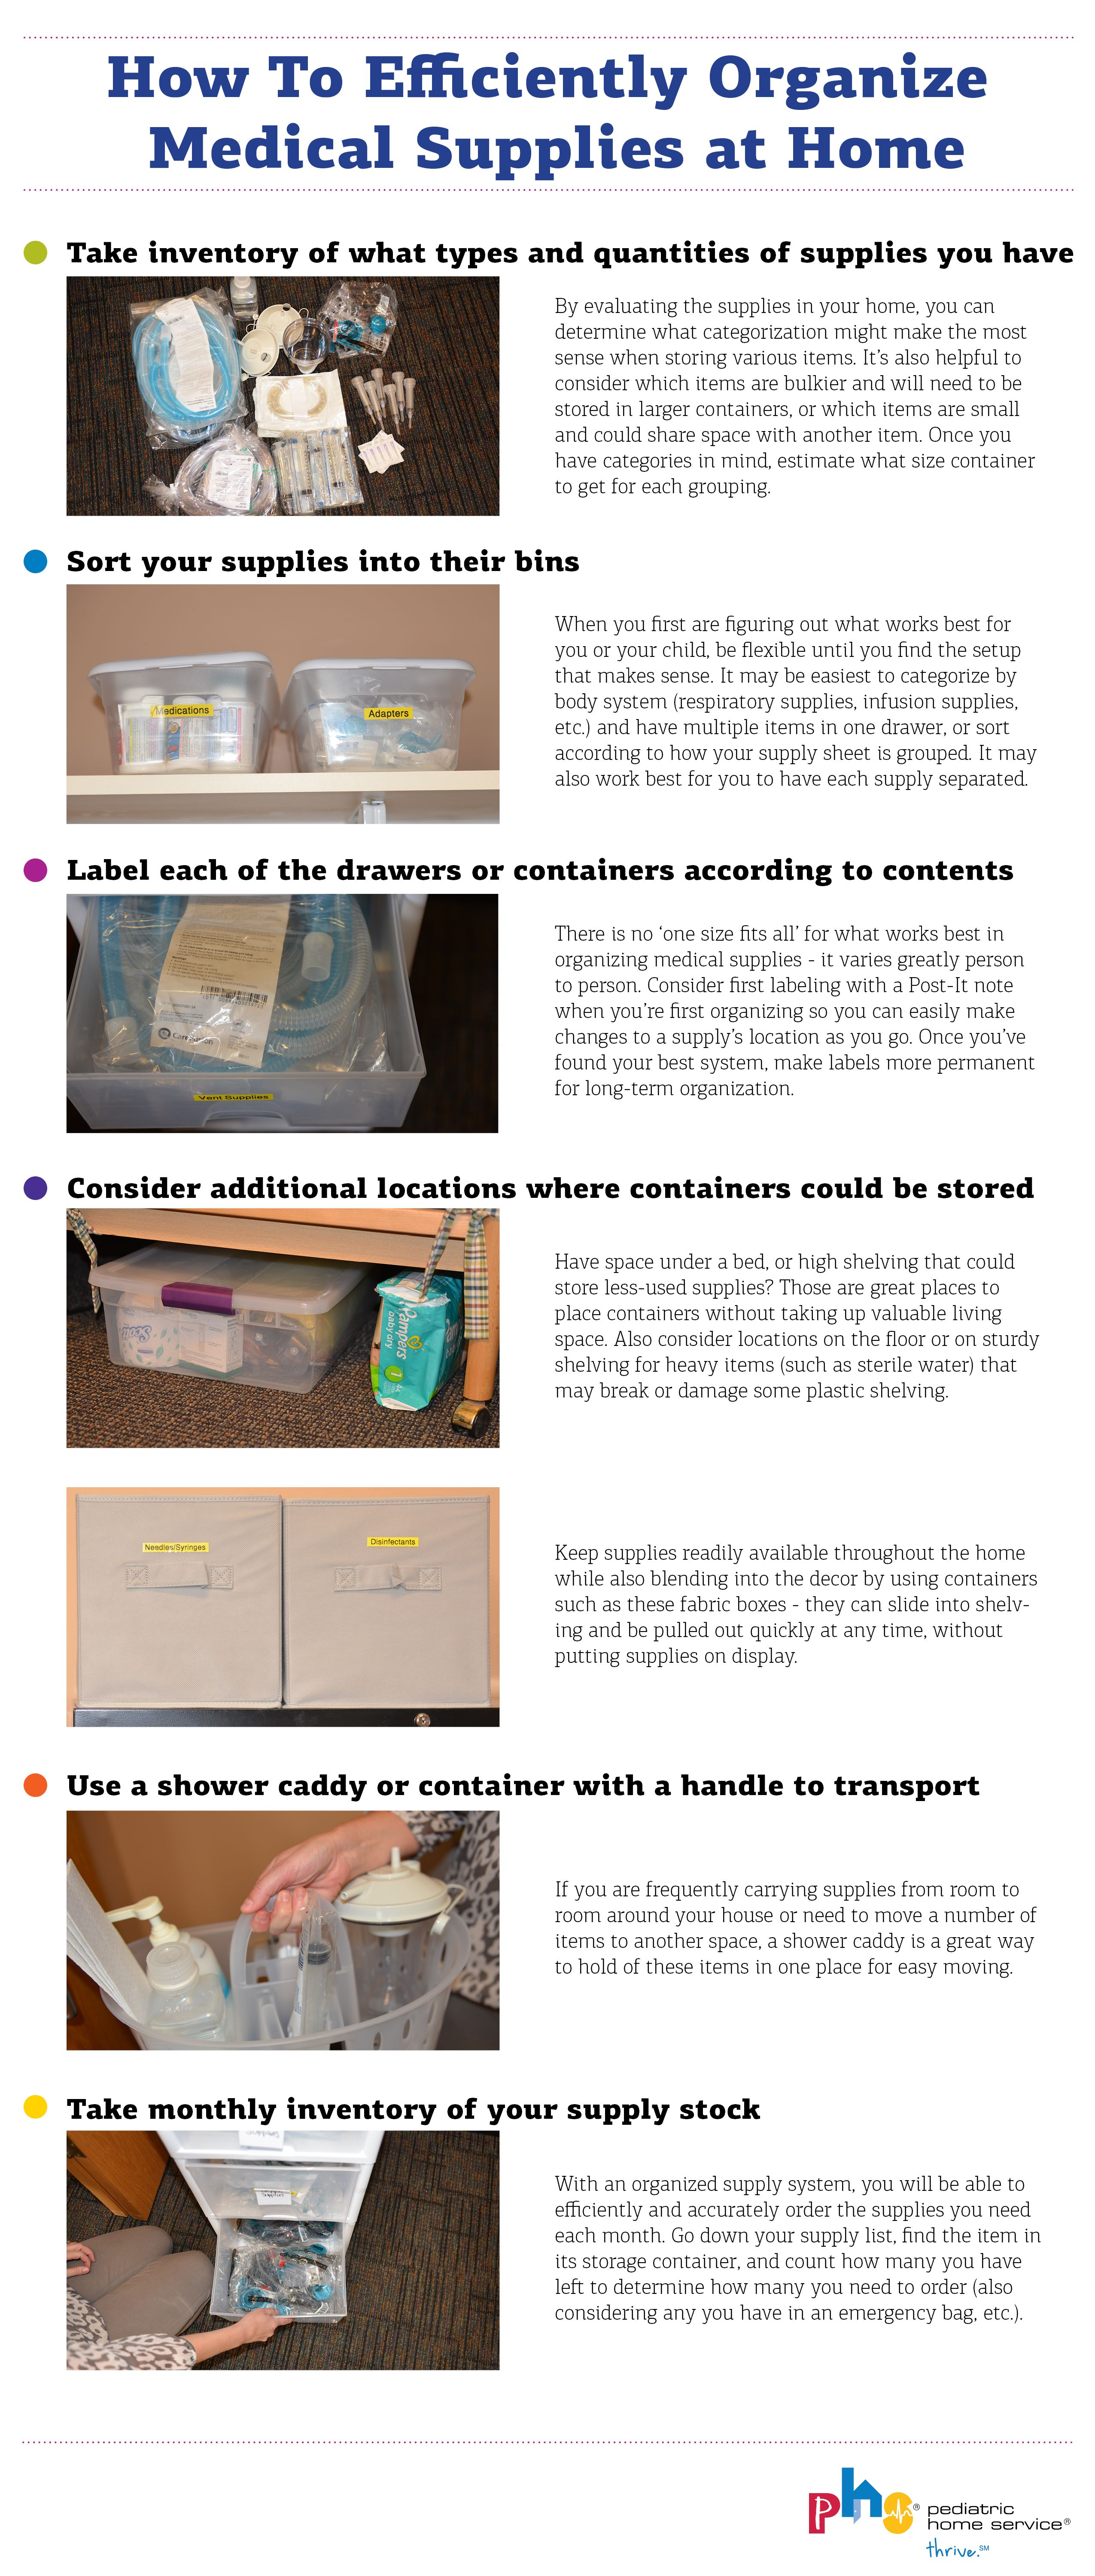 Keep Your Child S Medical Supplies Organized With These Storage Tips Medical Supply Storage Medical Supply Organization Medical Supplies